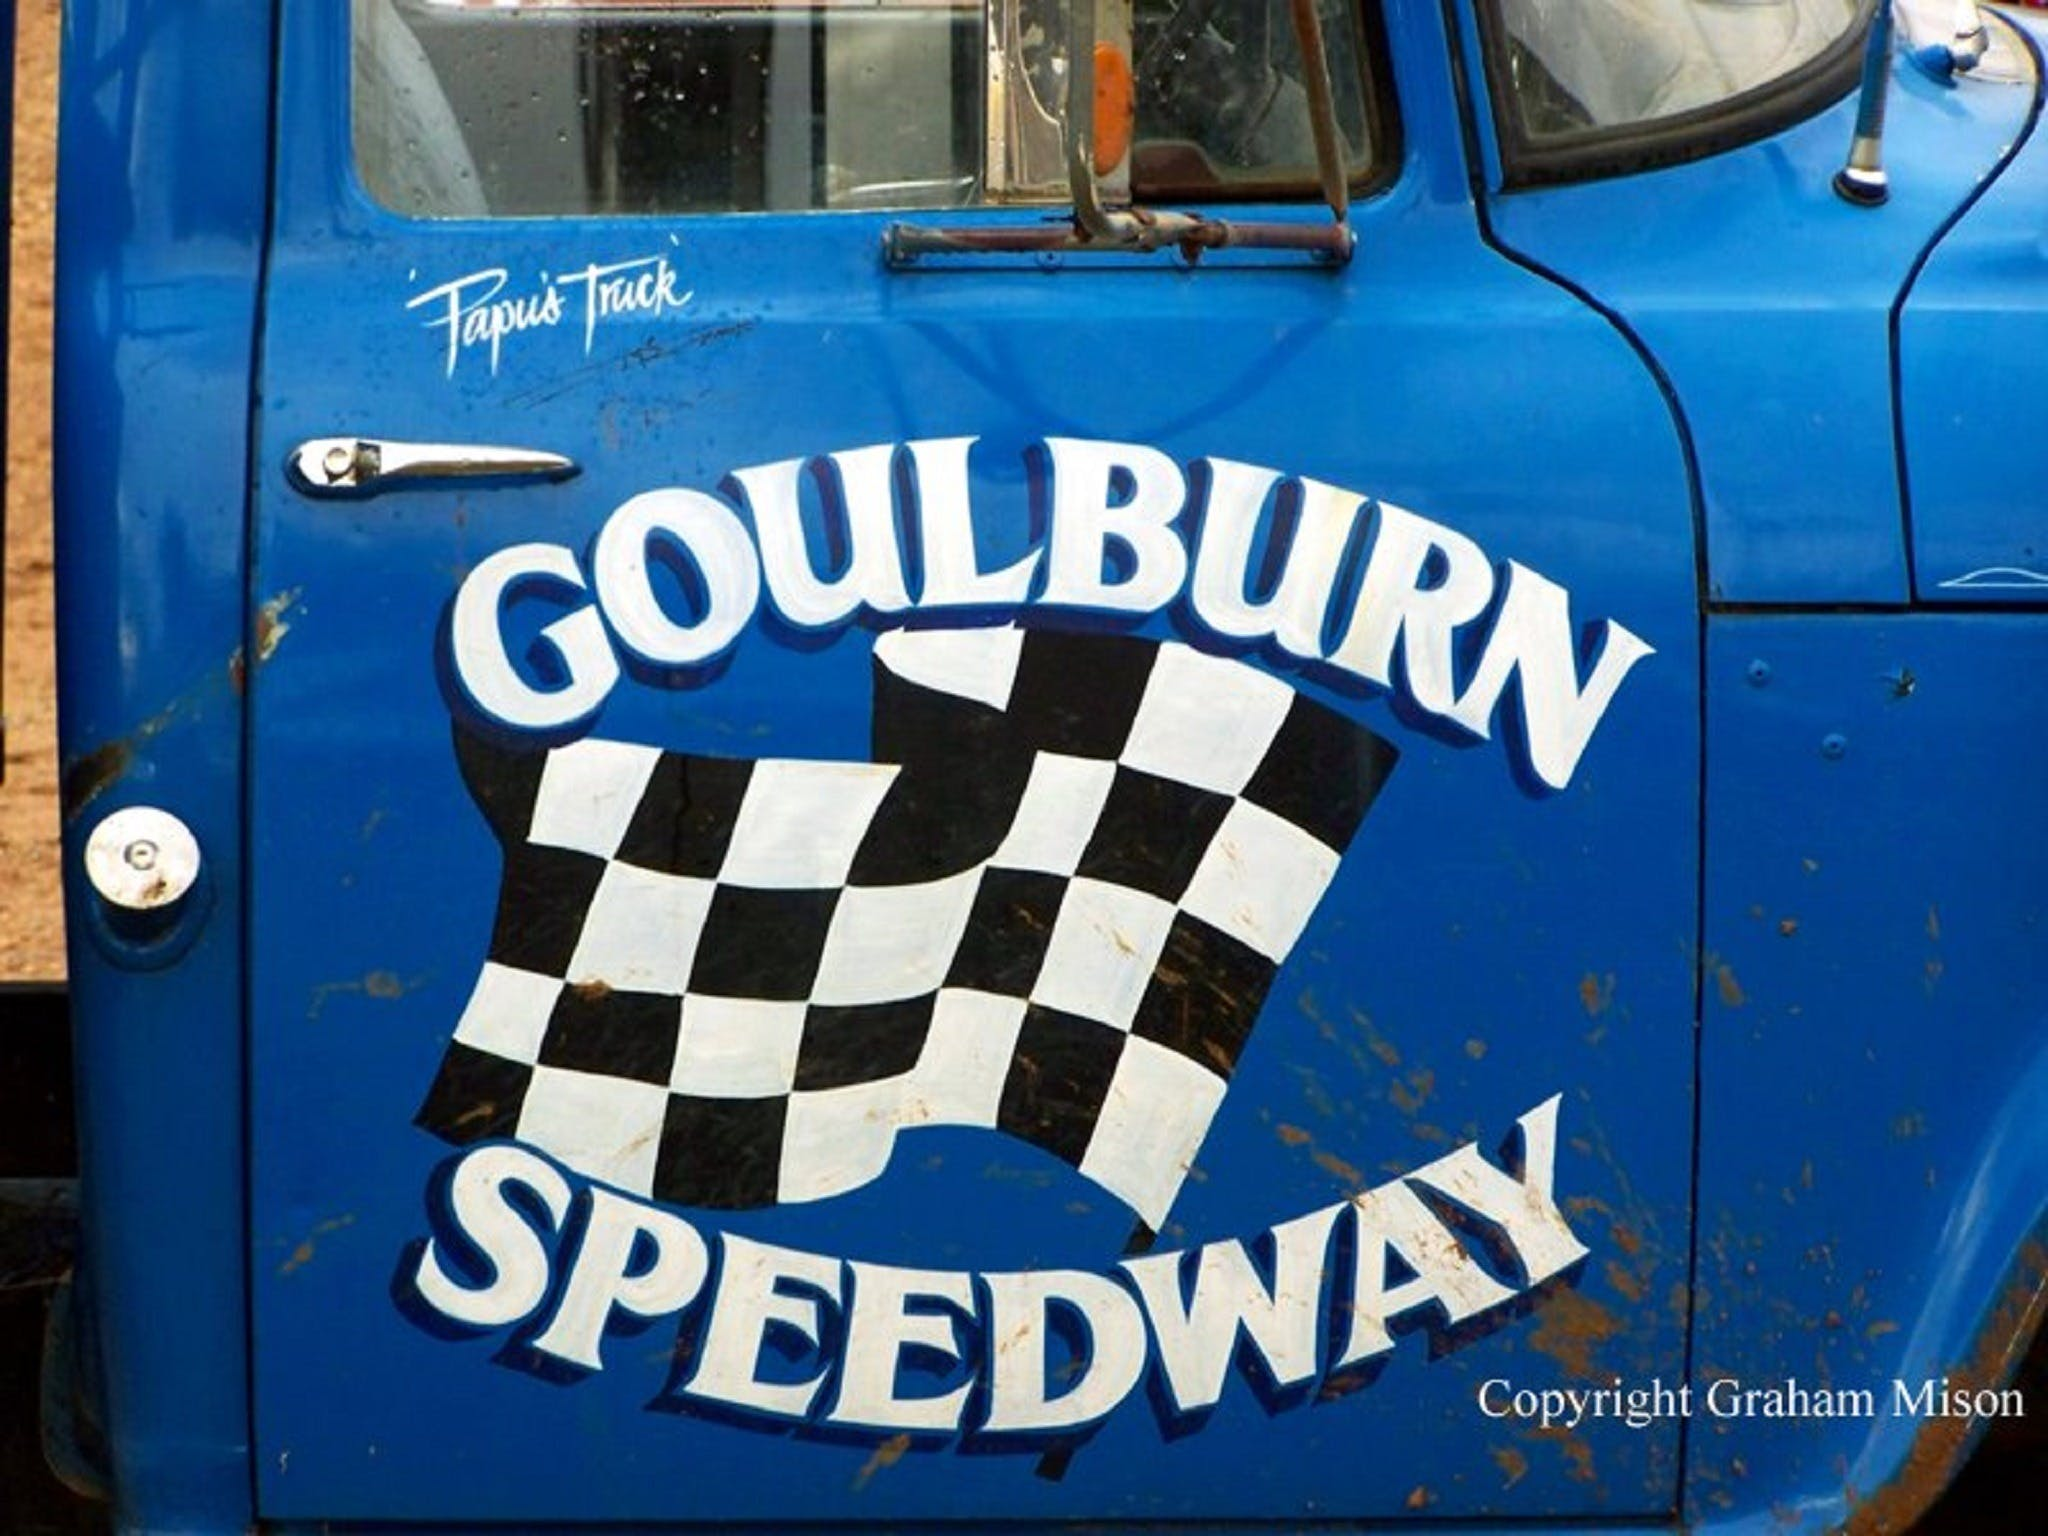 50 years of racing at Goulburn Speedway - Townsville Tourism